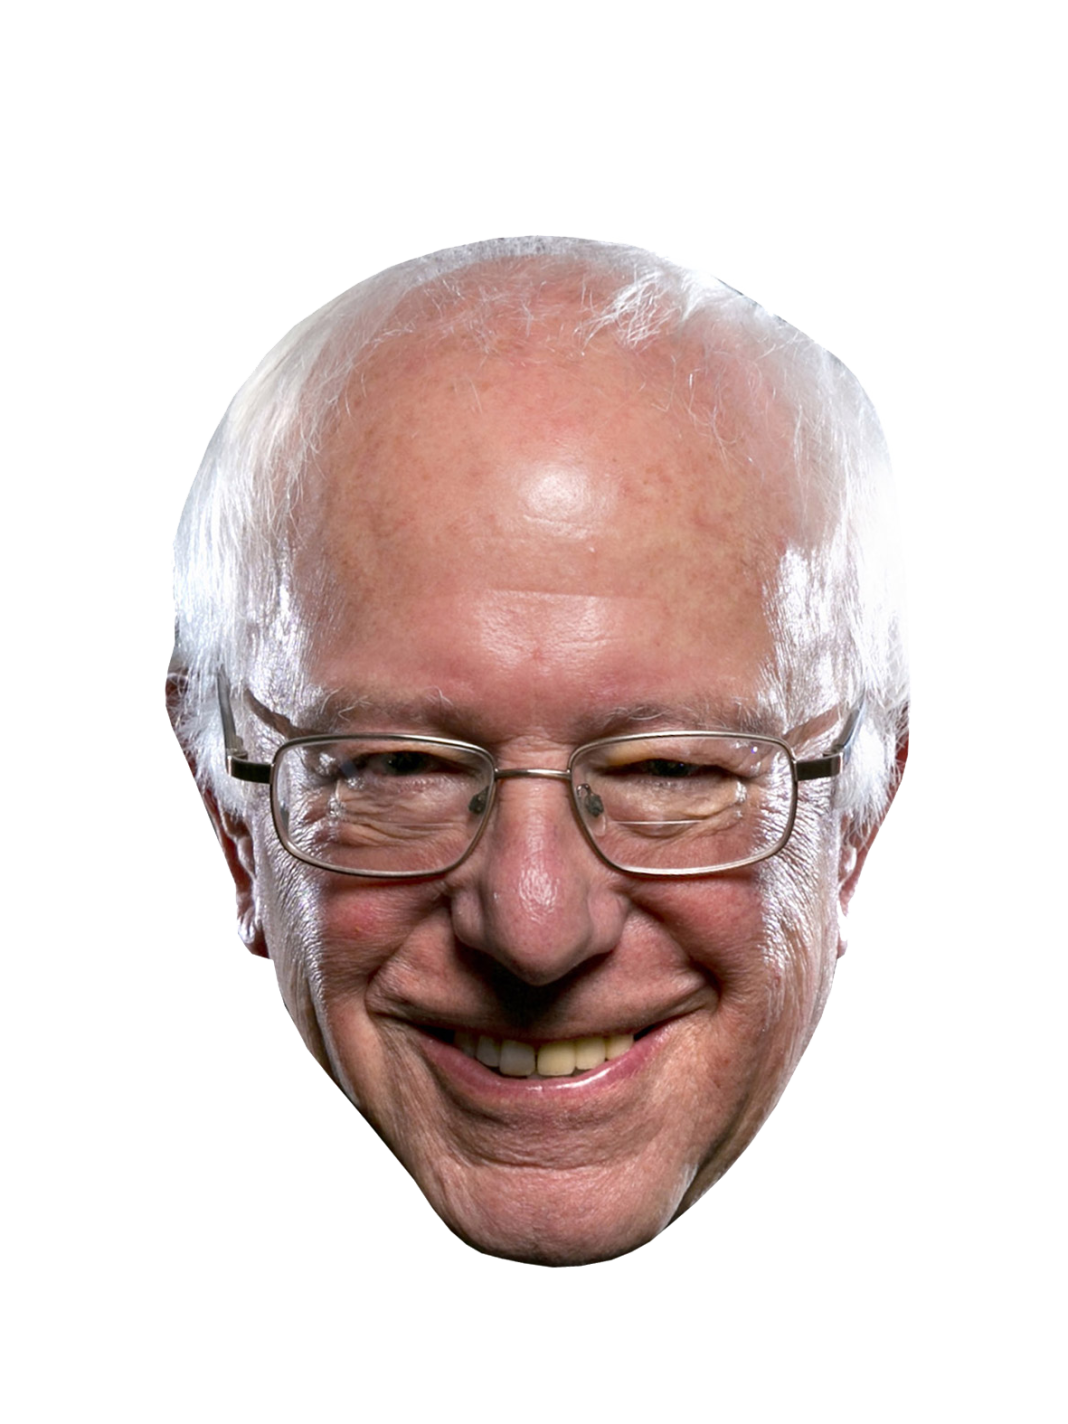 Sanders United Politician Of Face States Citizen PNG Image